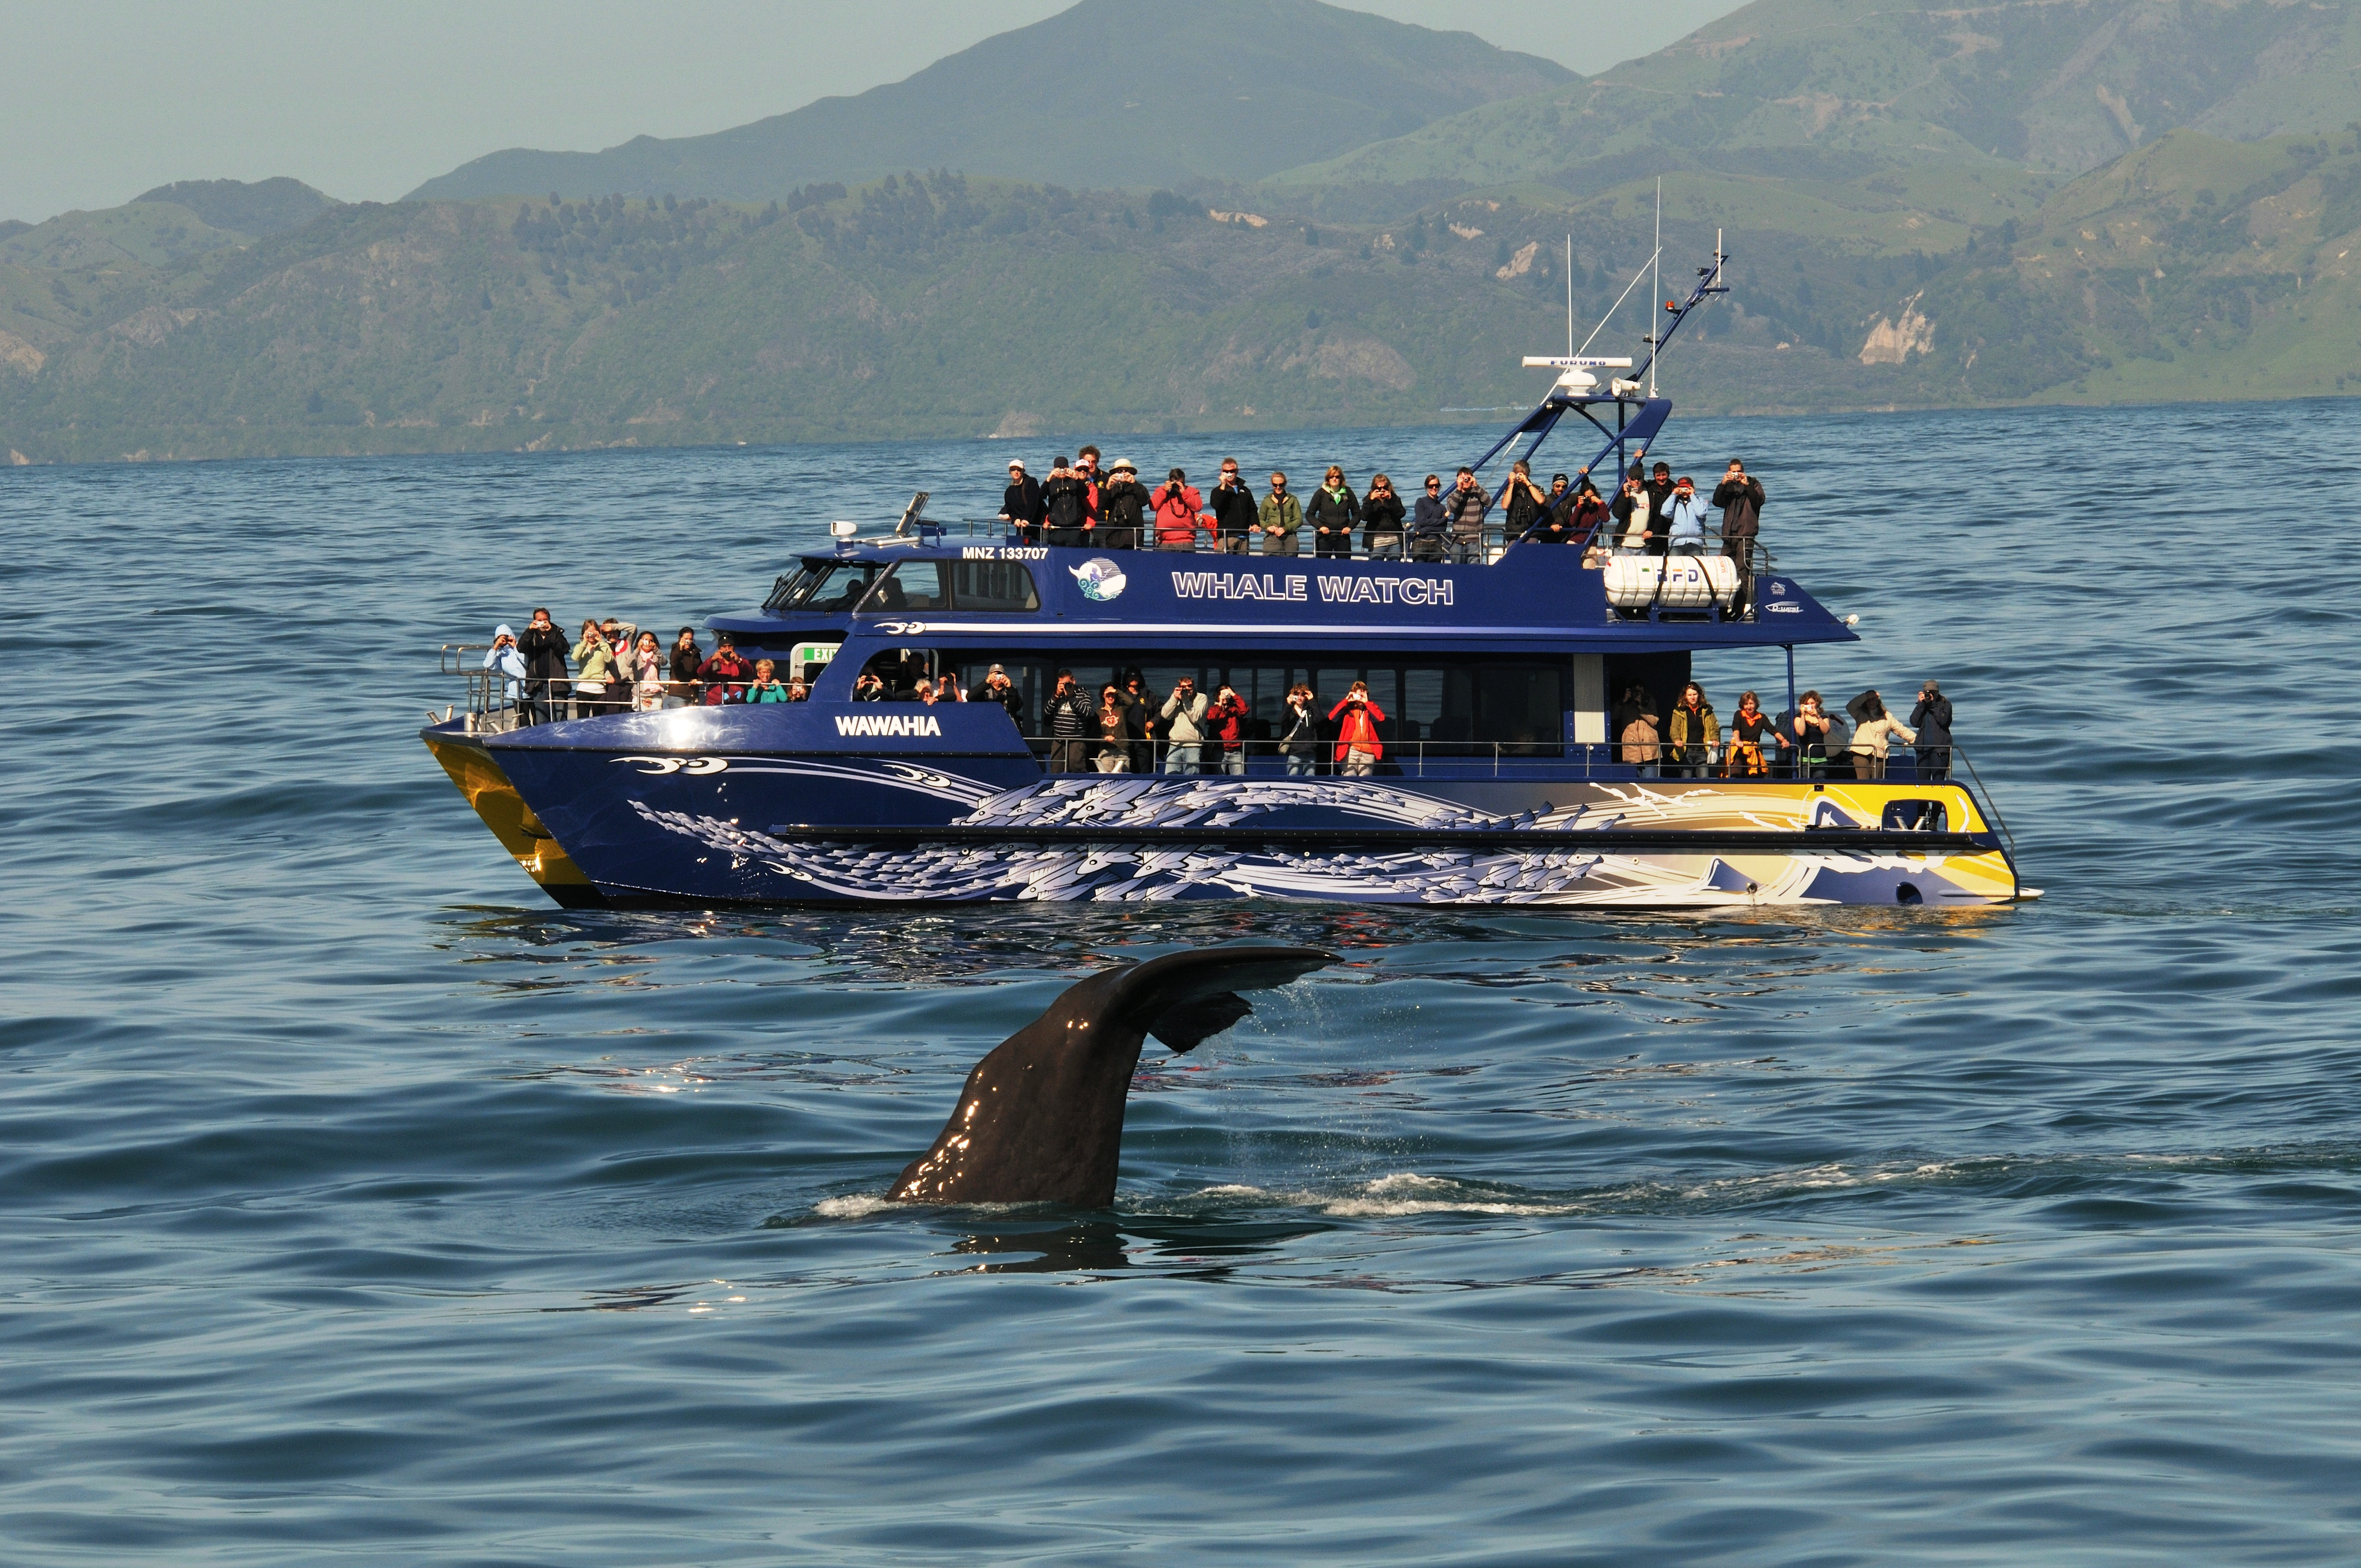 whale watch kaikoura Two days ago we had a humpback whale surface feeding which is not behaviour we get to see in #kaikoura very often, in fact for most of our sea crew this was a first.